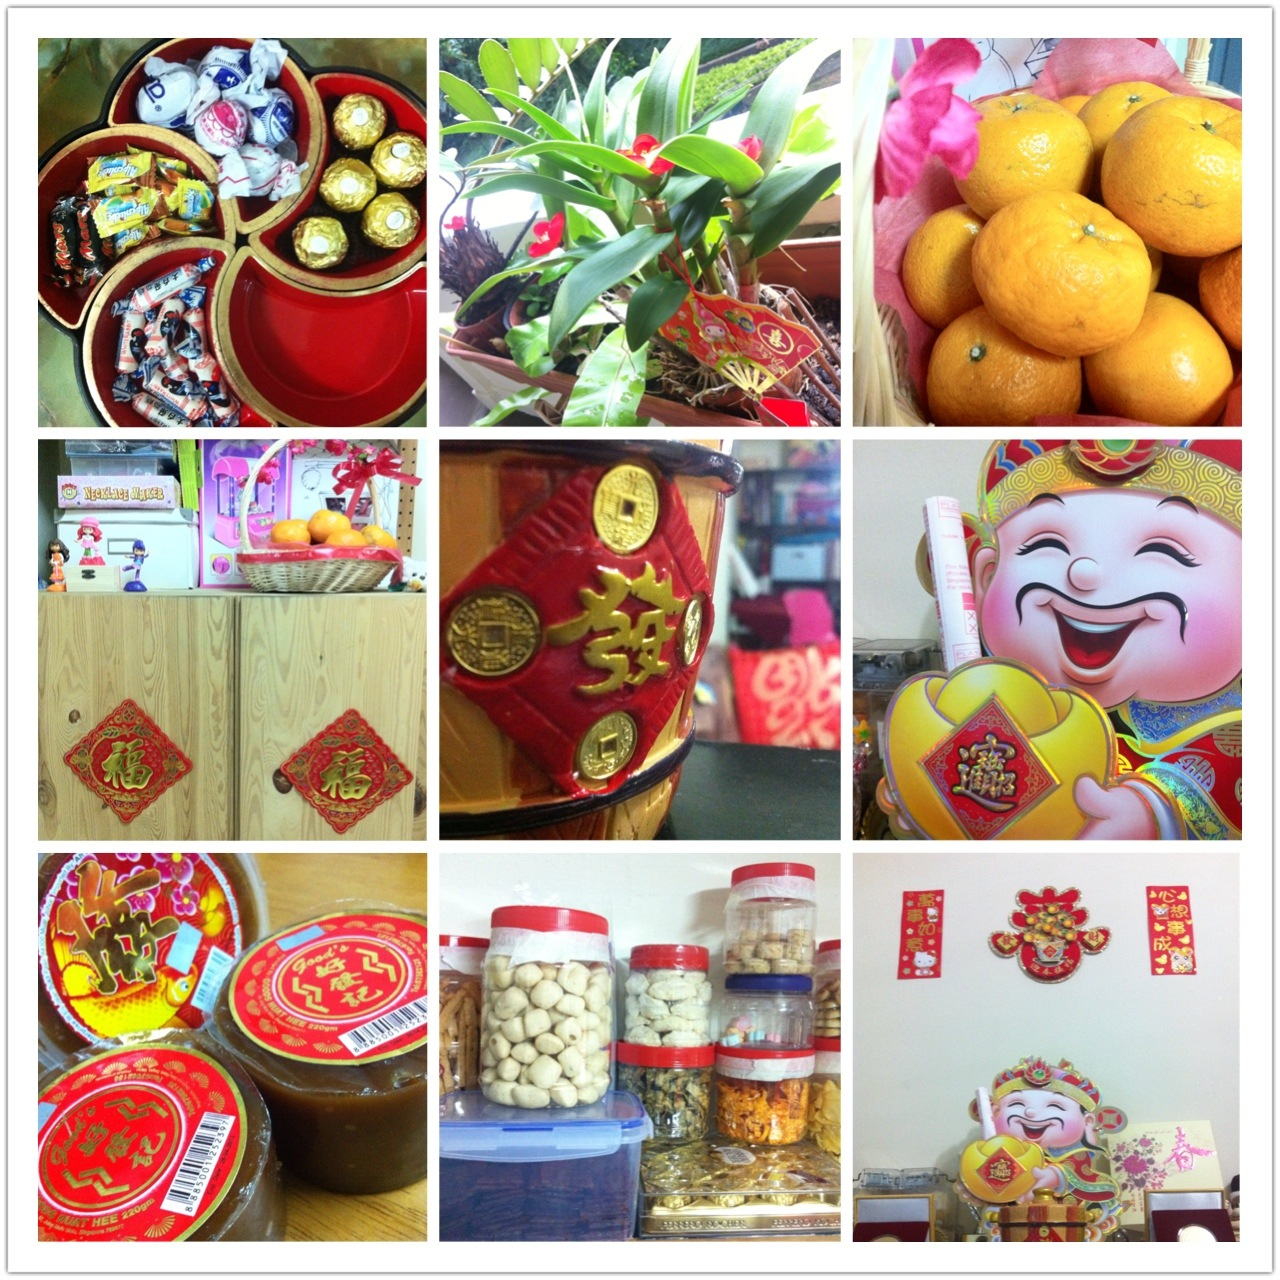 Chinese New Year Decorations at Home – Adrian Video Image